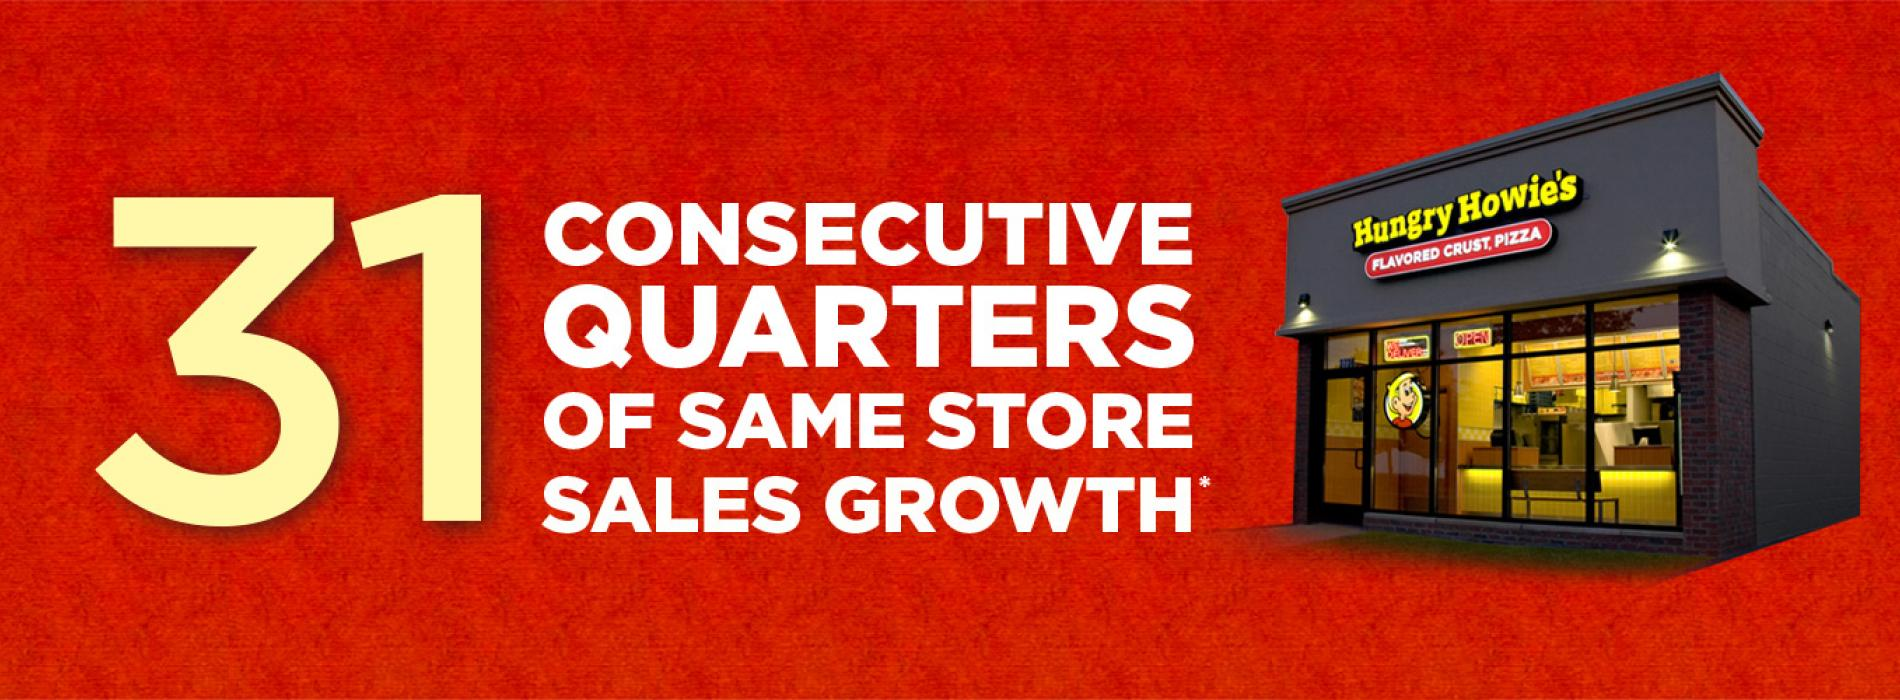 31 Consecutive Quarters of Sales Growth